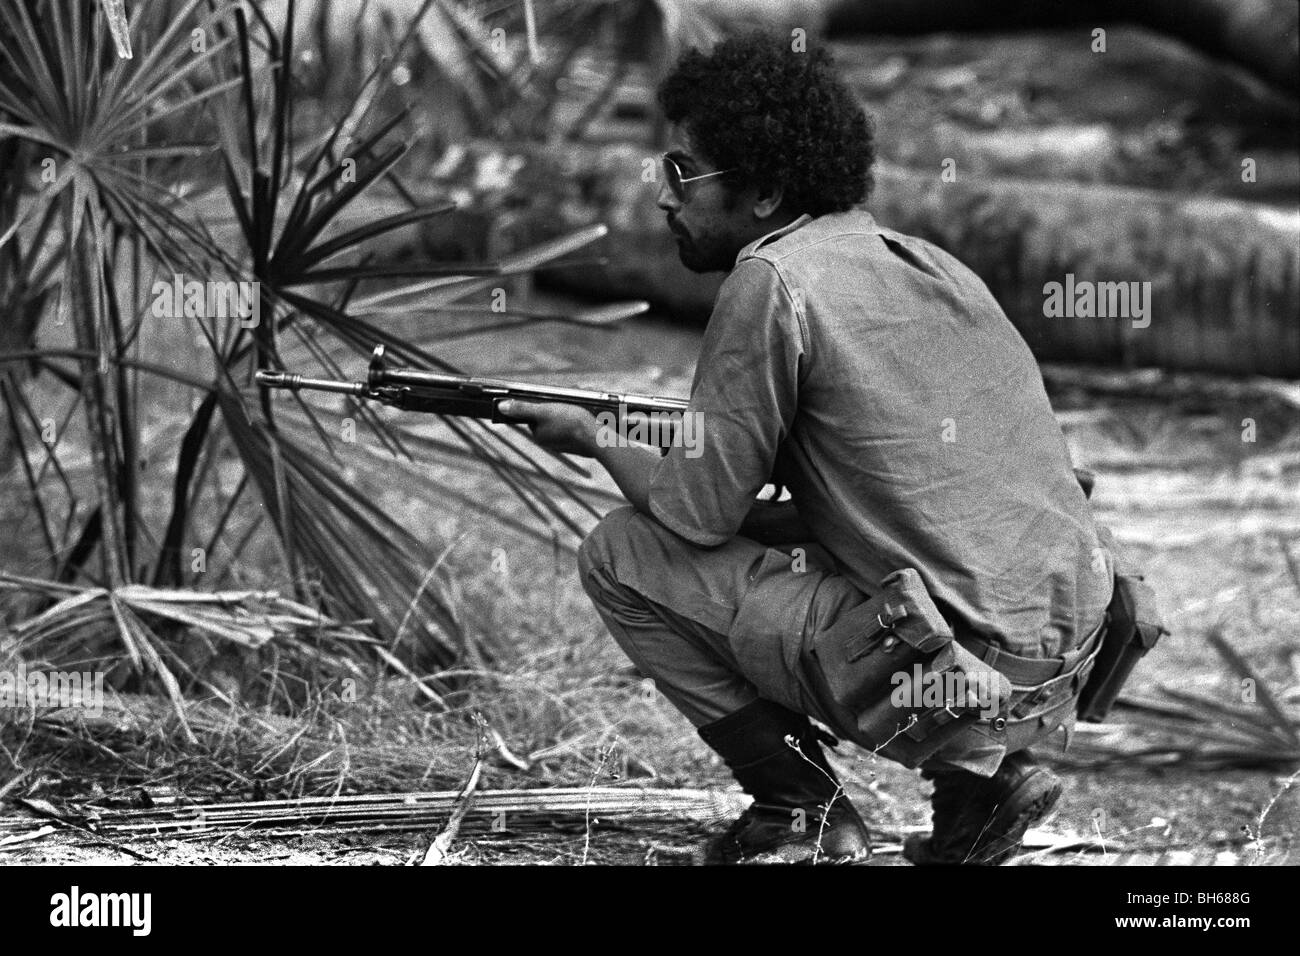 Jose Ramos-Horta near Batugade close to the border with Indonesia who making violent incursions into East Timor - Stock Image